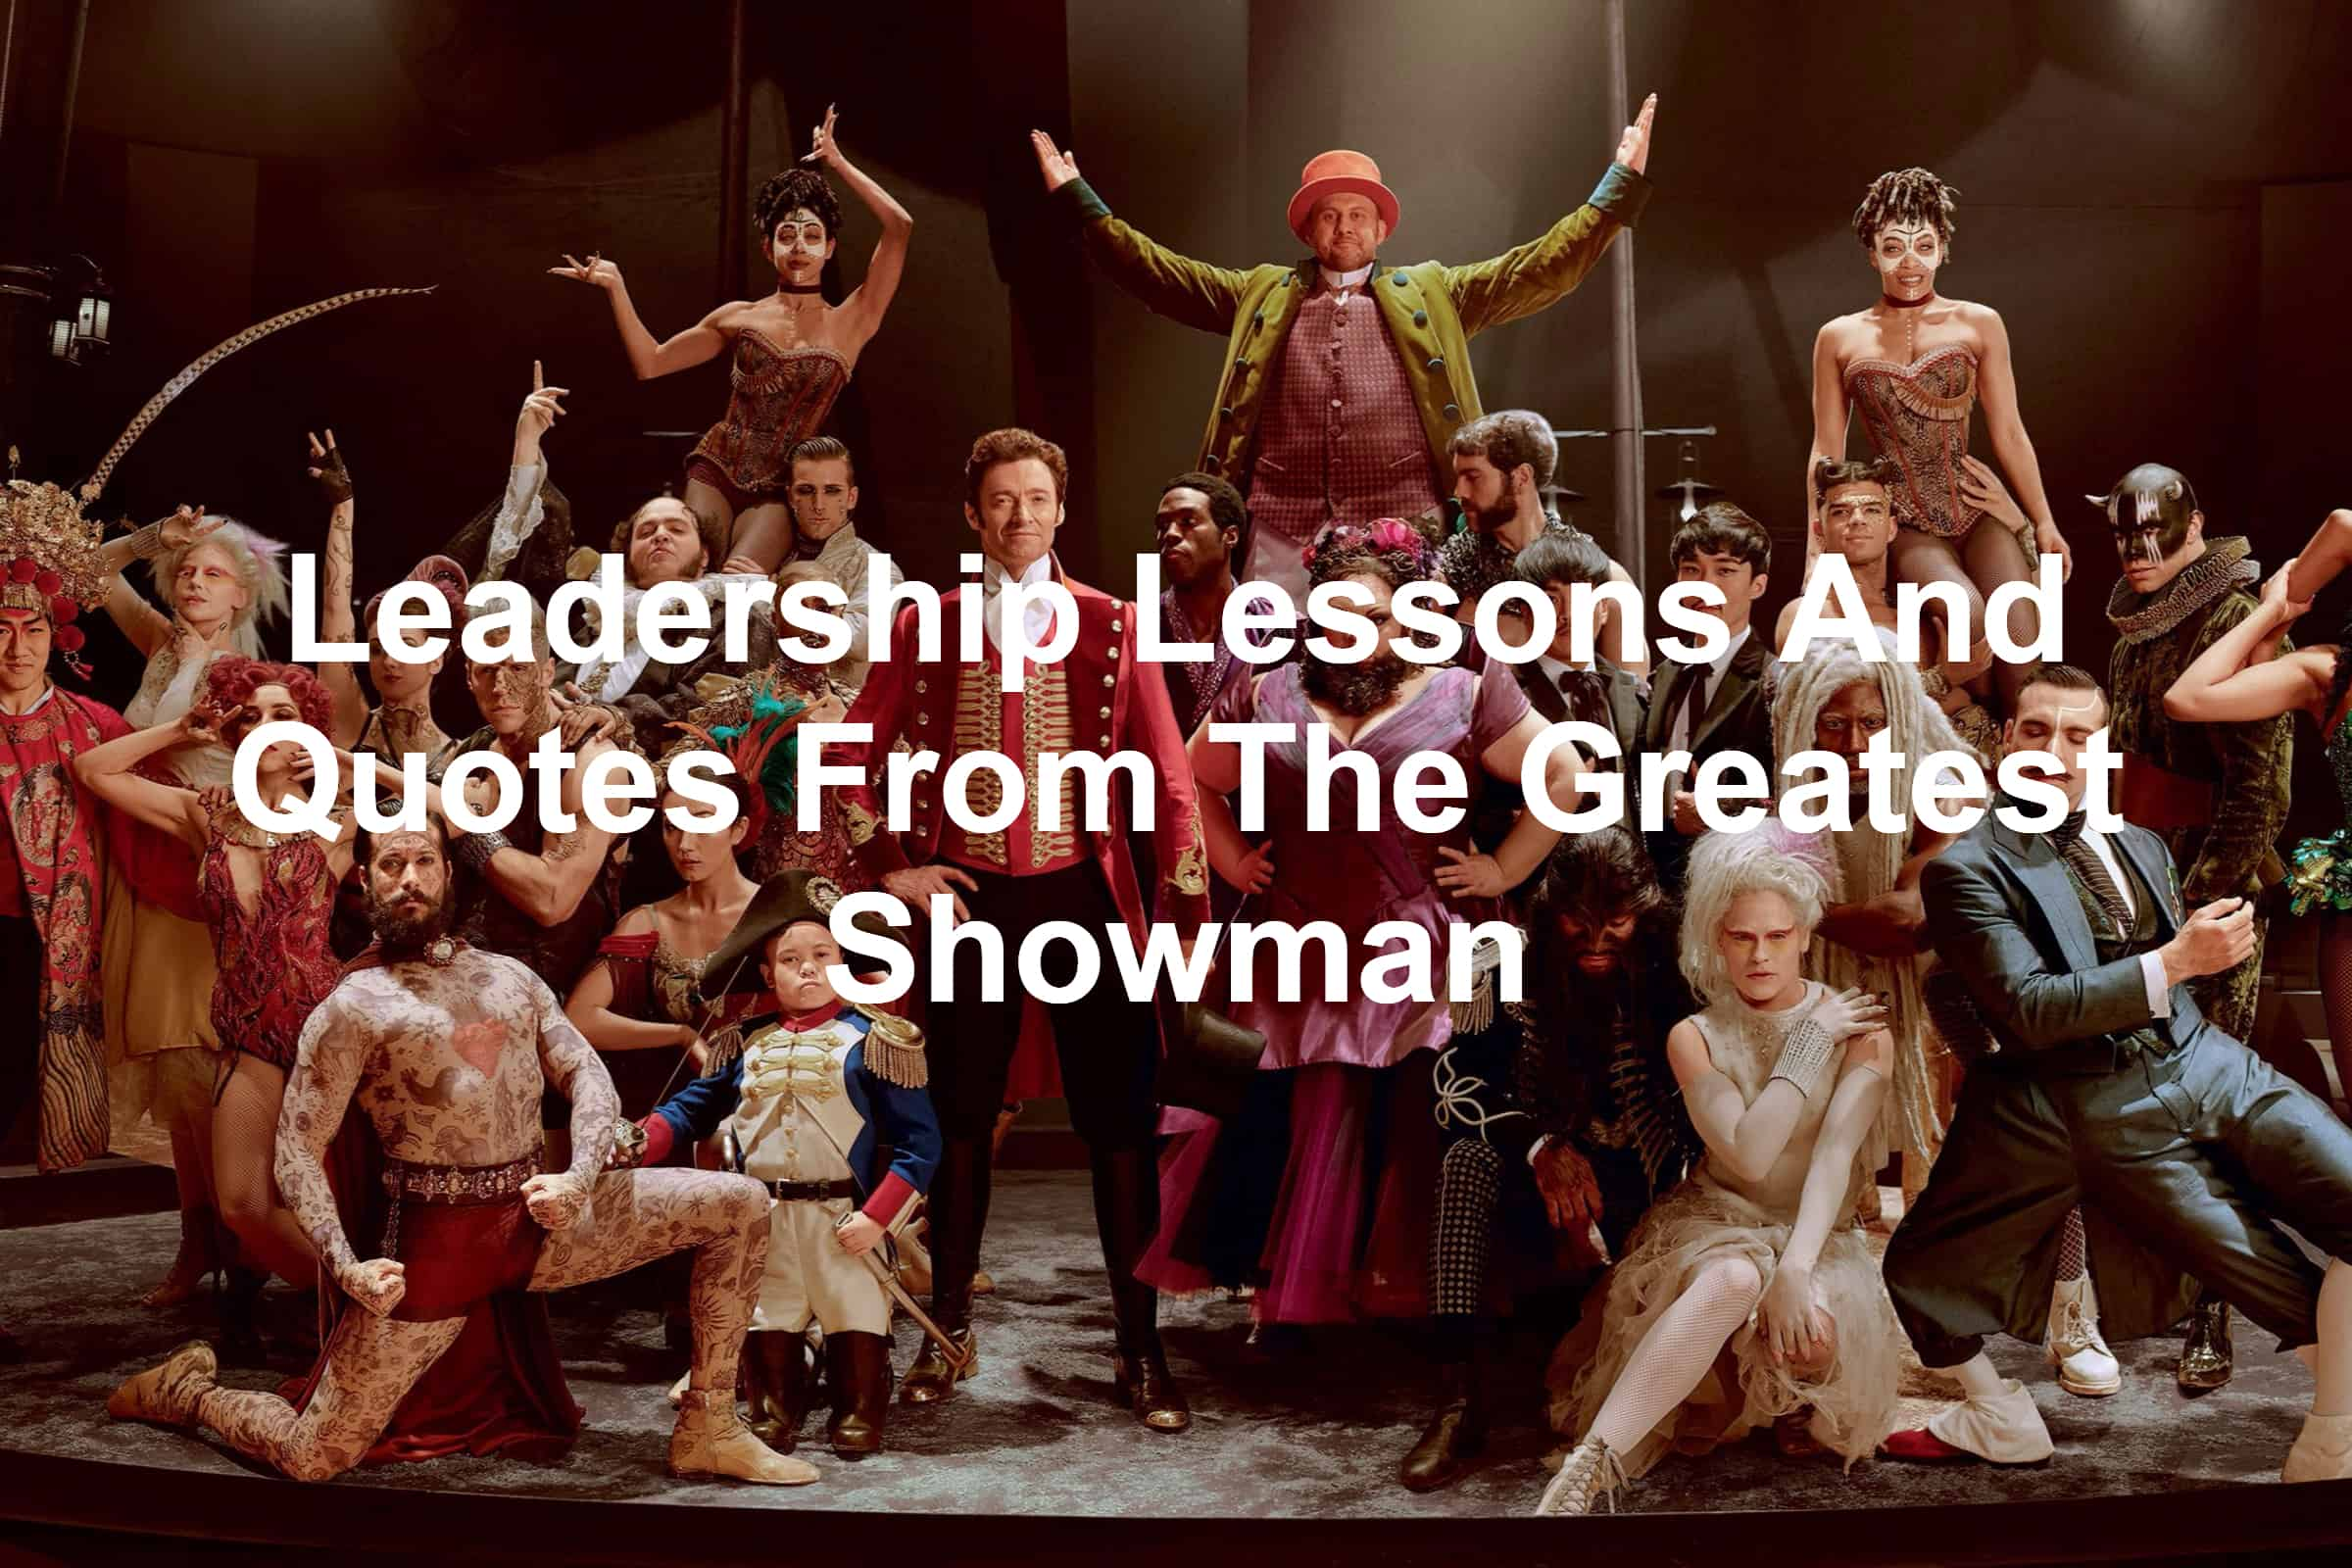 quotes and leadership lessons from The Greatest Showman with Hugh Jackman